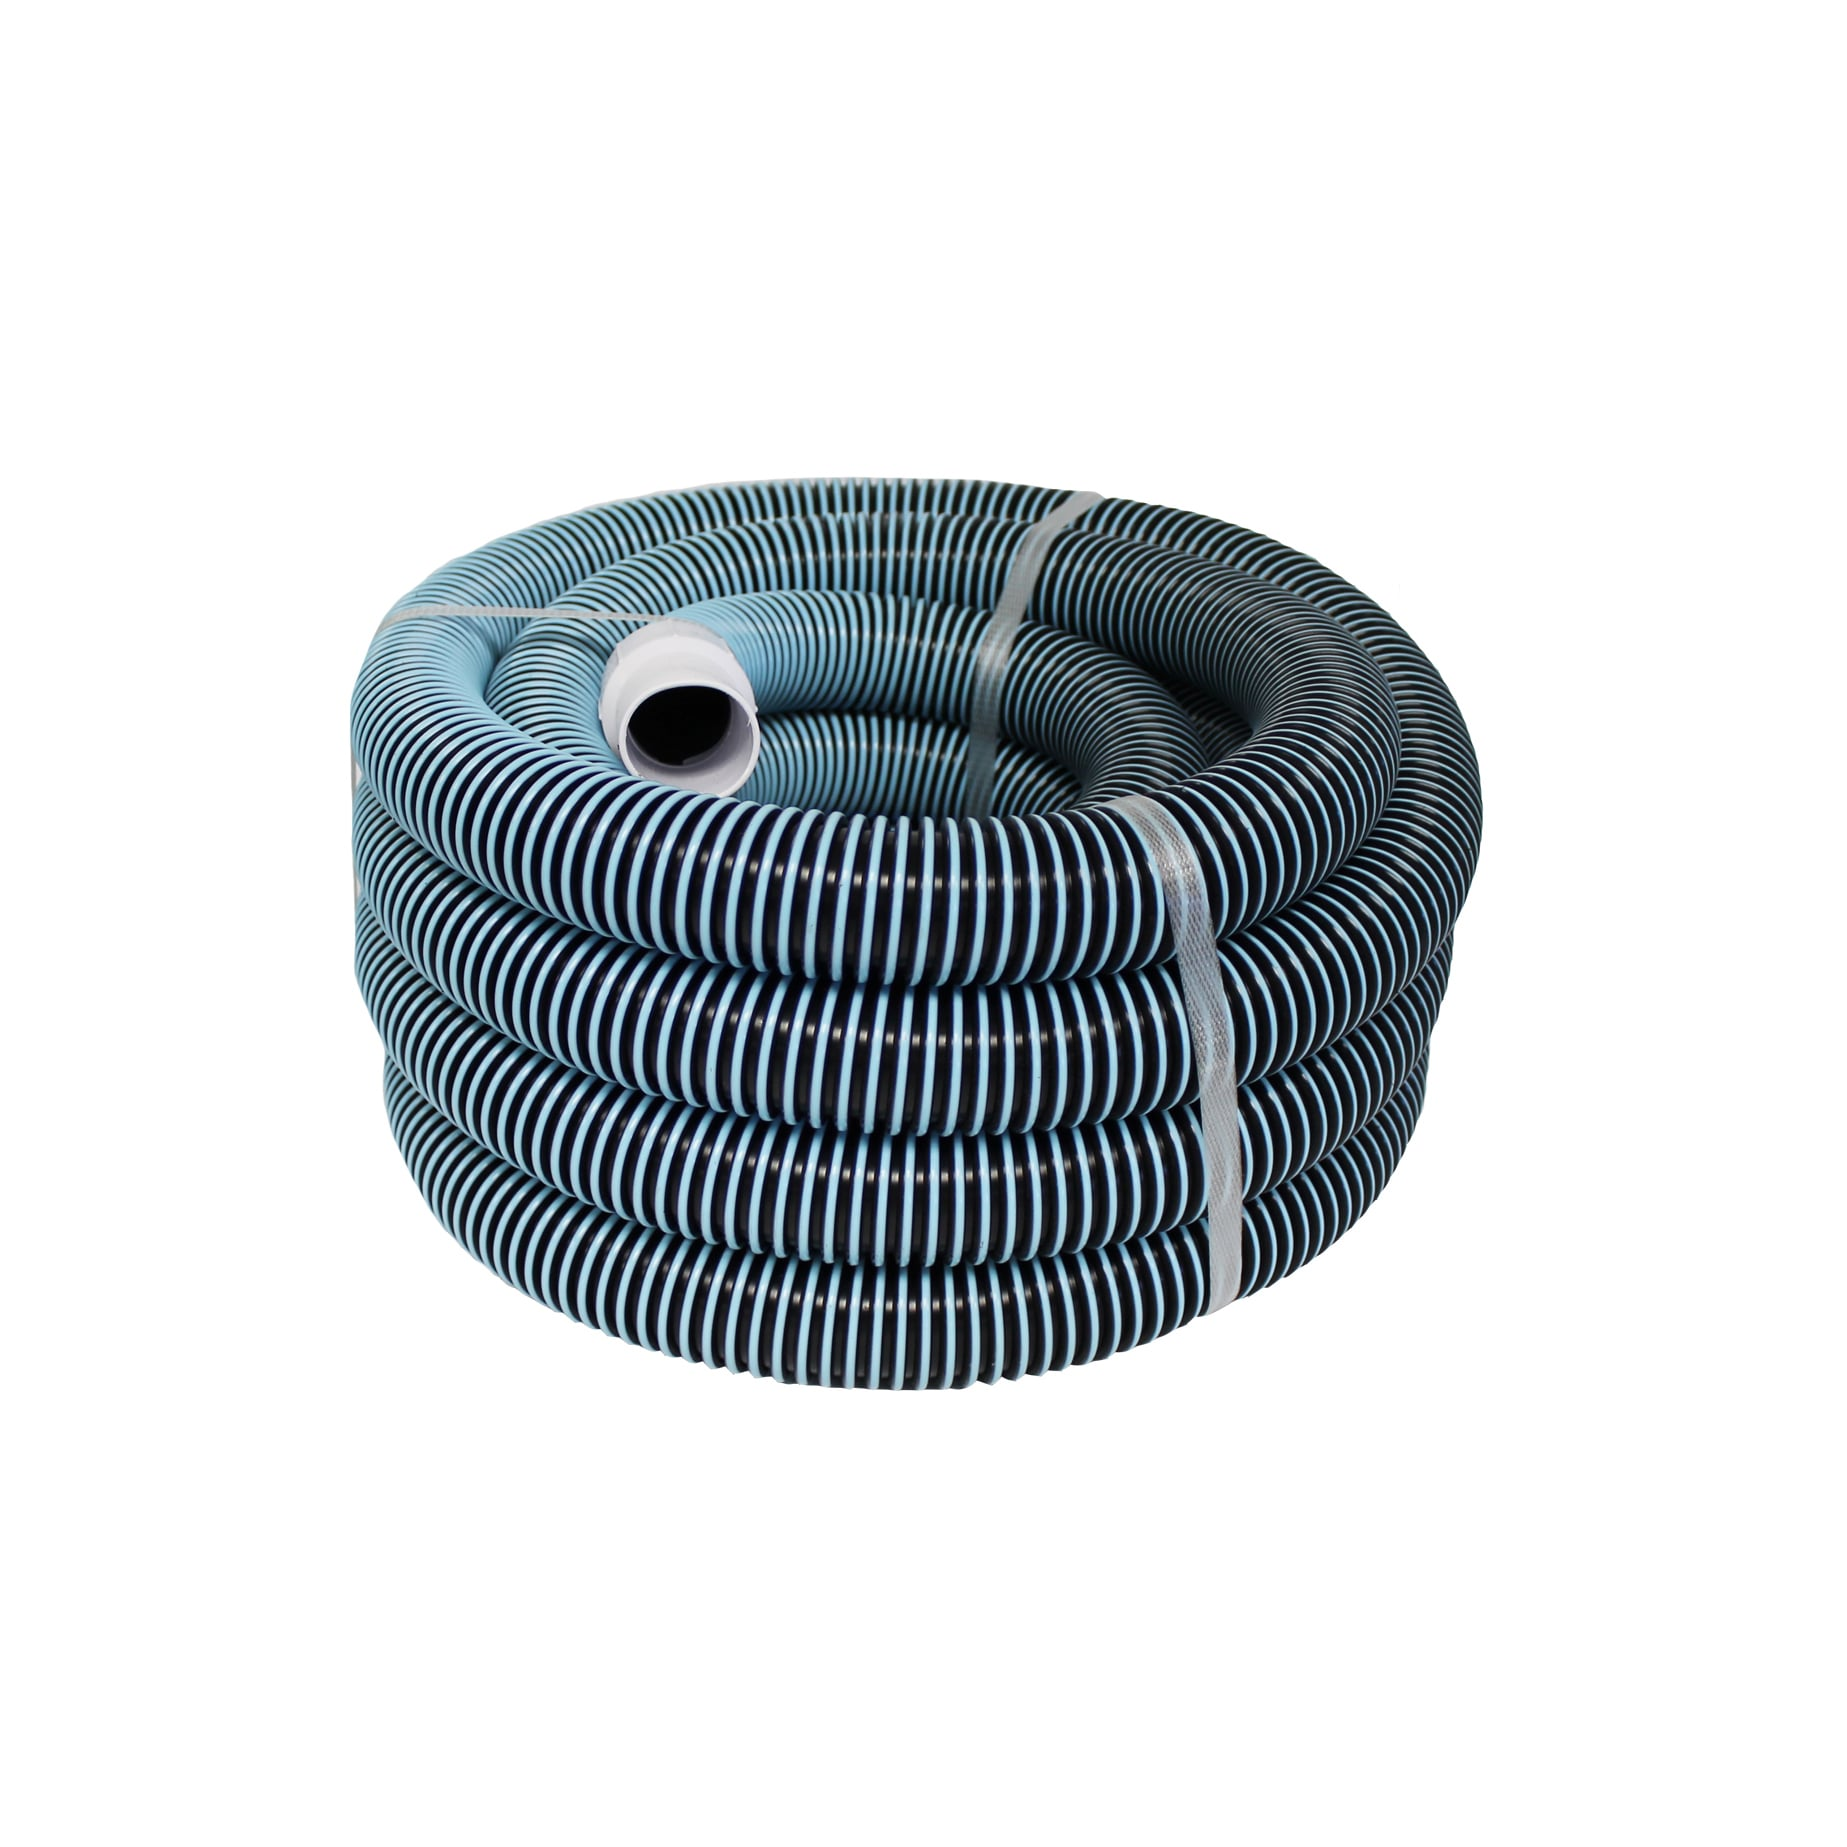 Crucial 1.5 inch x 30' In-Ground Vacuum Pool Hose Compare...